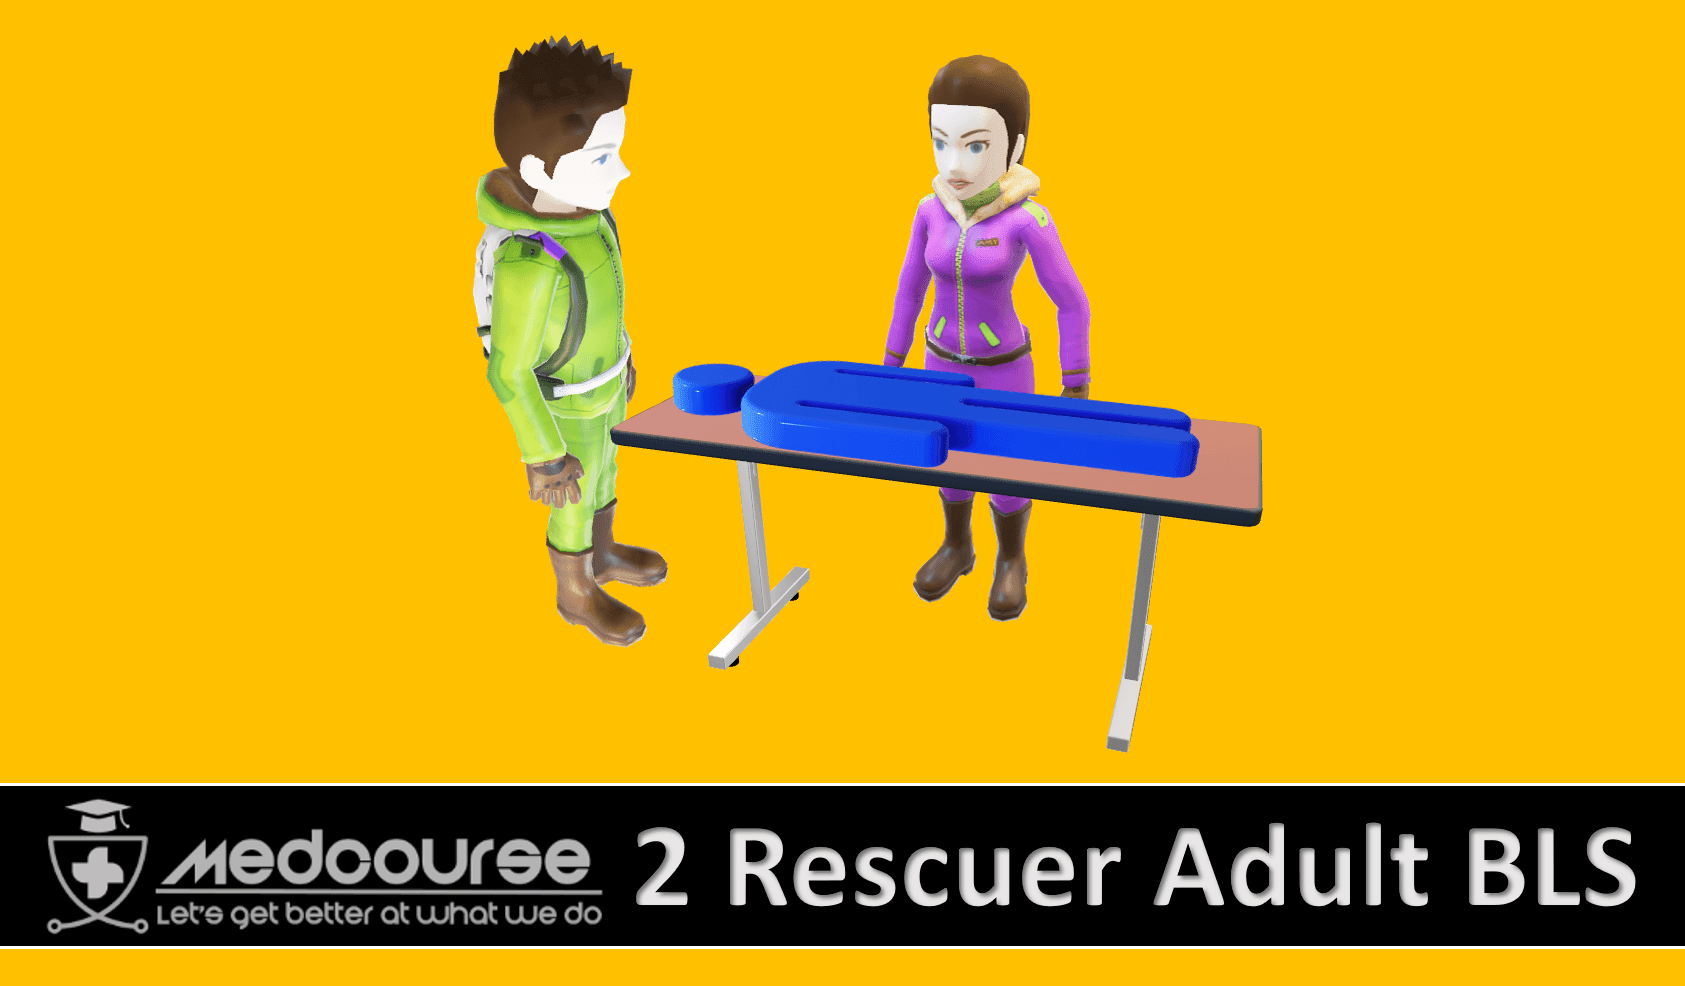 two rescuer adult bls